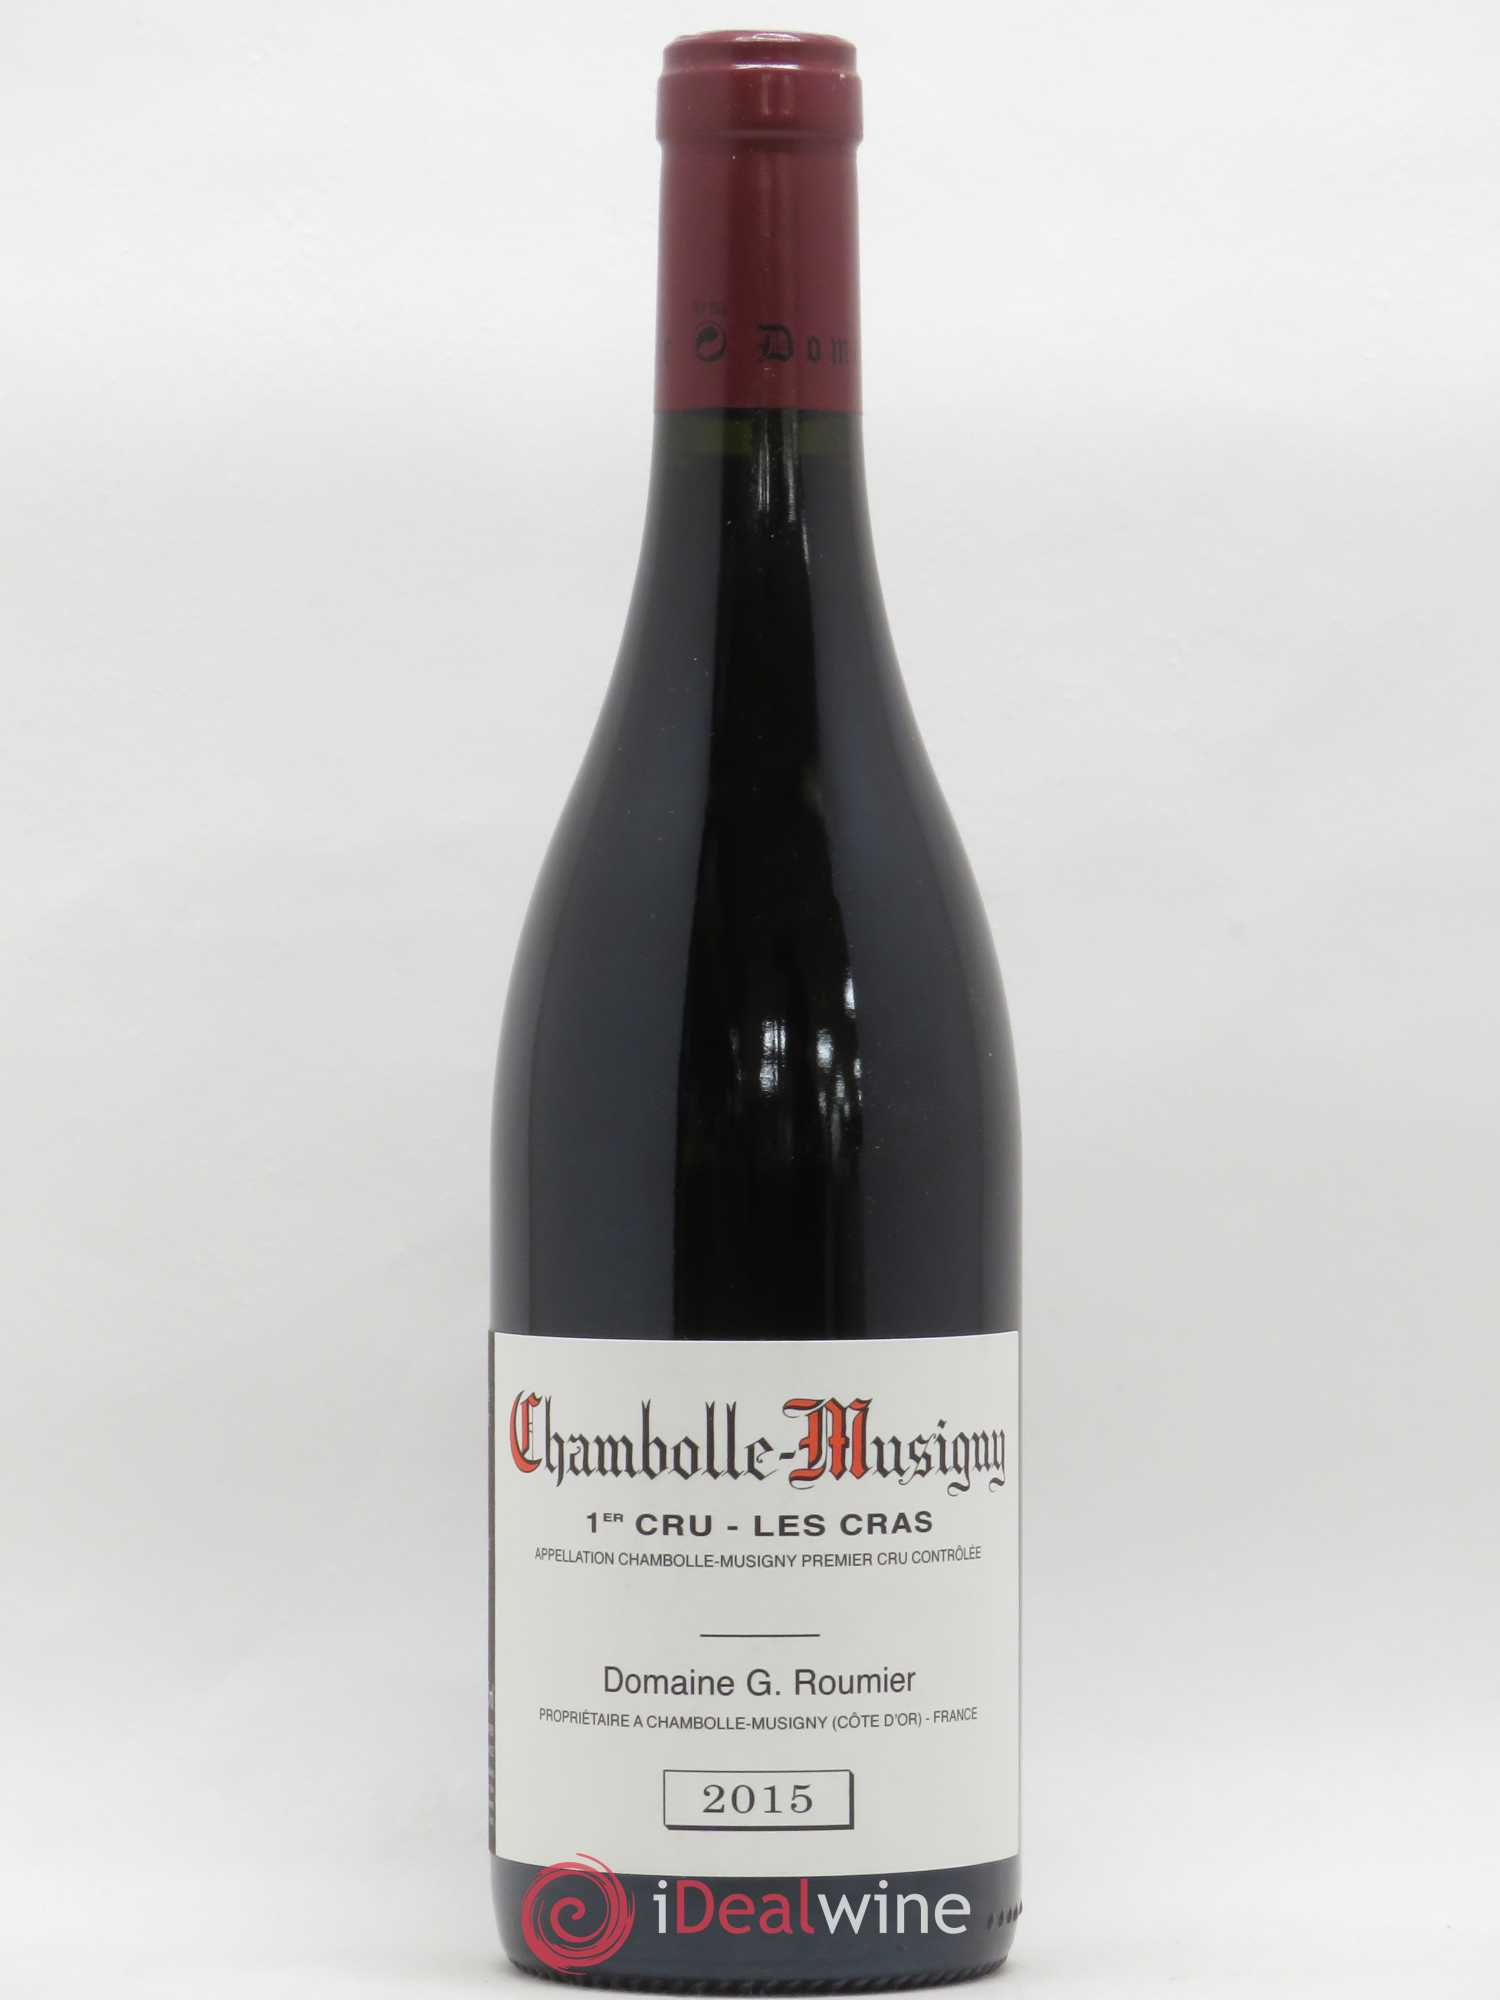 Chambolle-Musigny 1er Cru Les Cras Georges Roumier (Domaine)  2015 - Lot of 1 Bottle